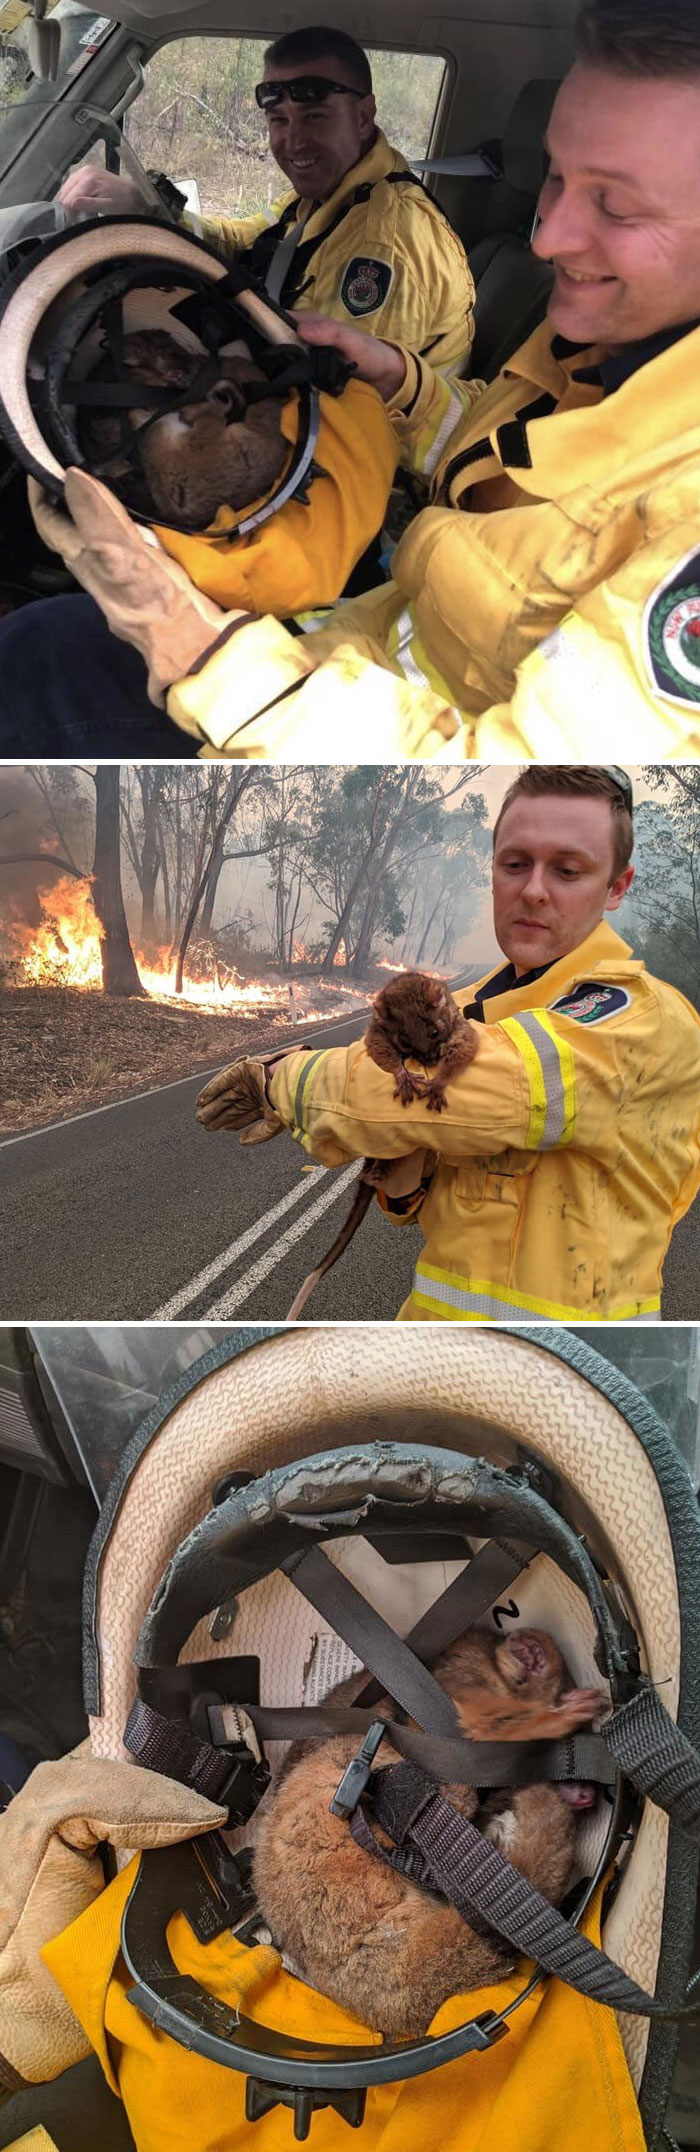 I'm So Proud Of My Country, Our Volunteer Firefighters Are Legends In Their Own Category